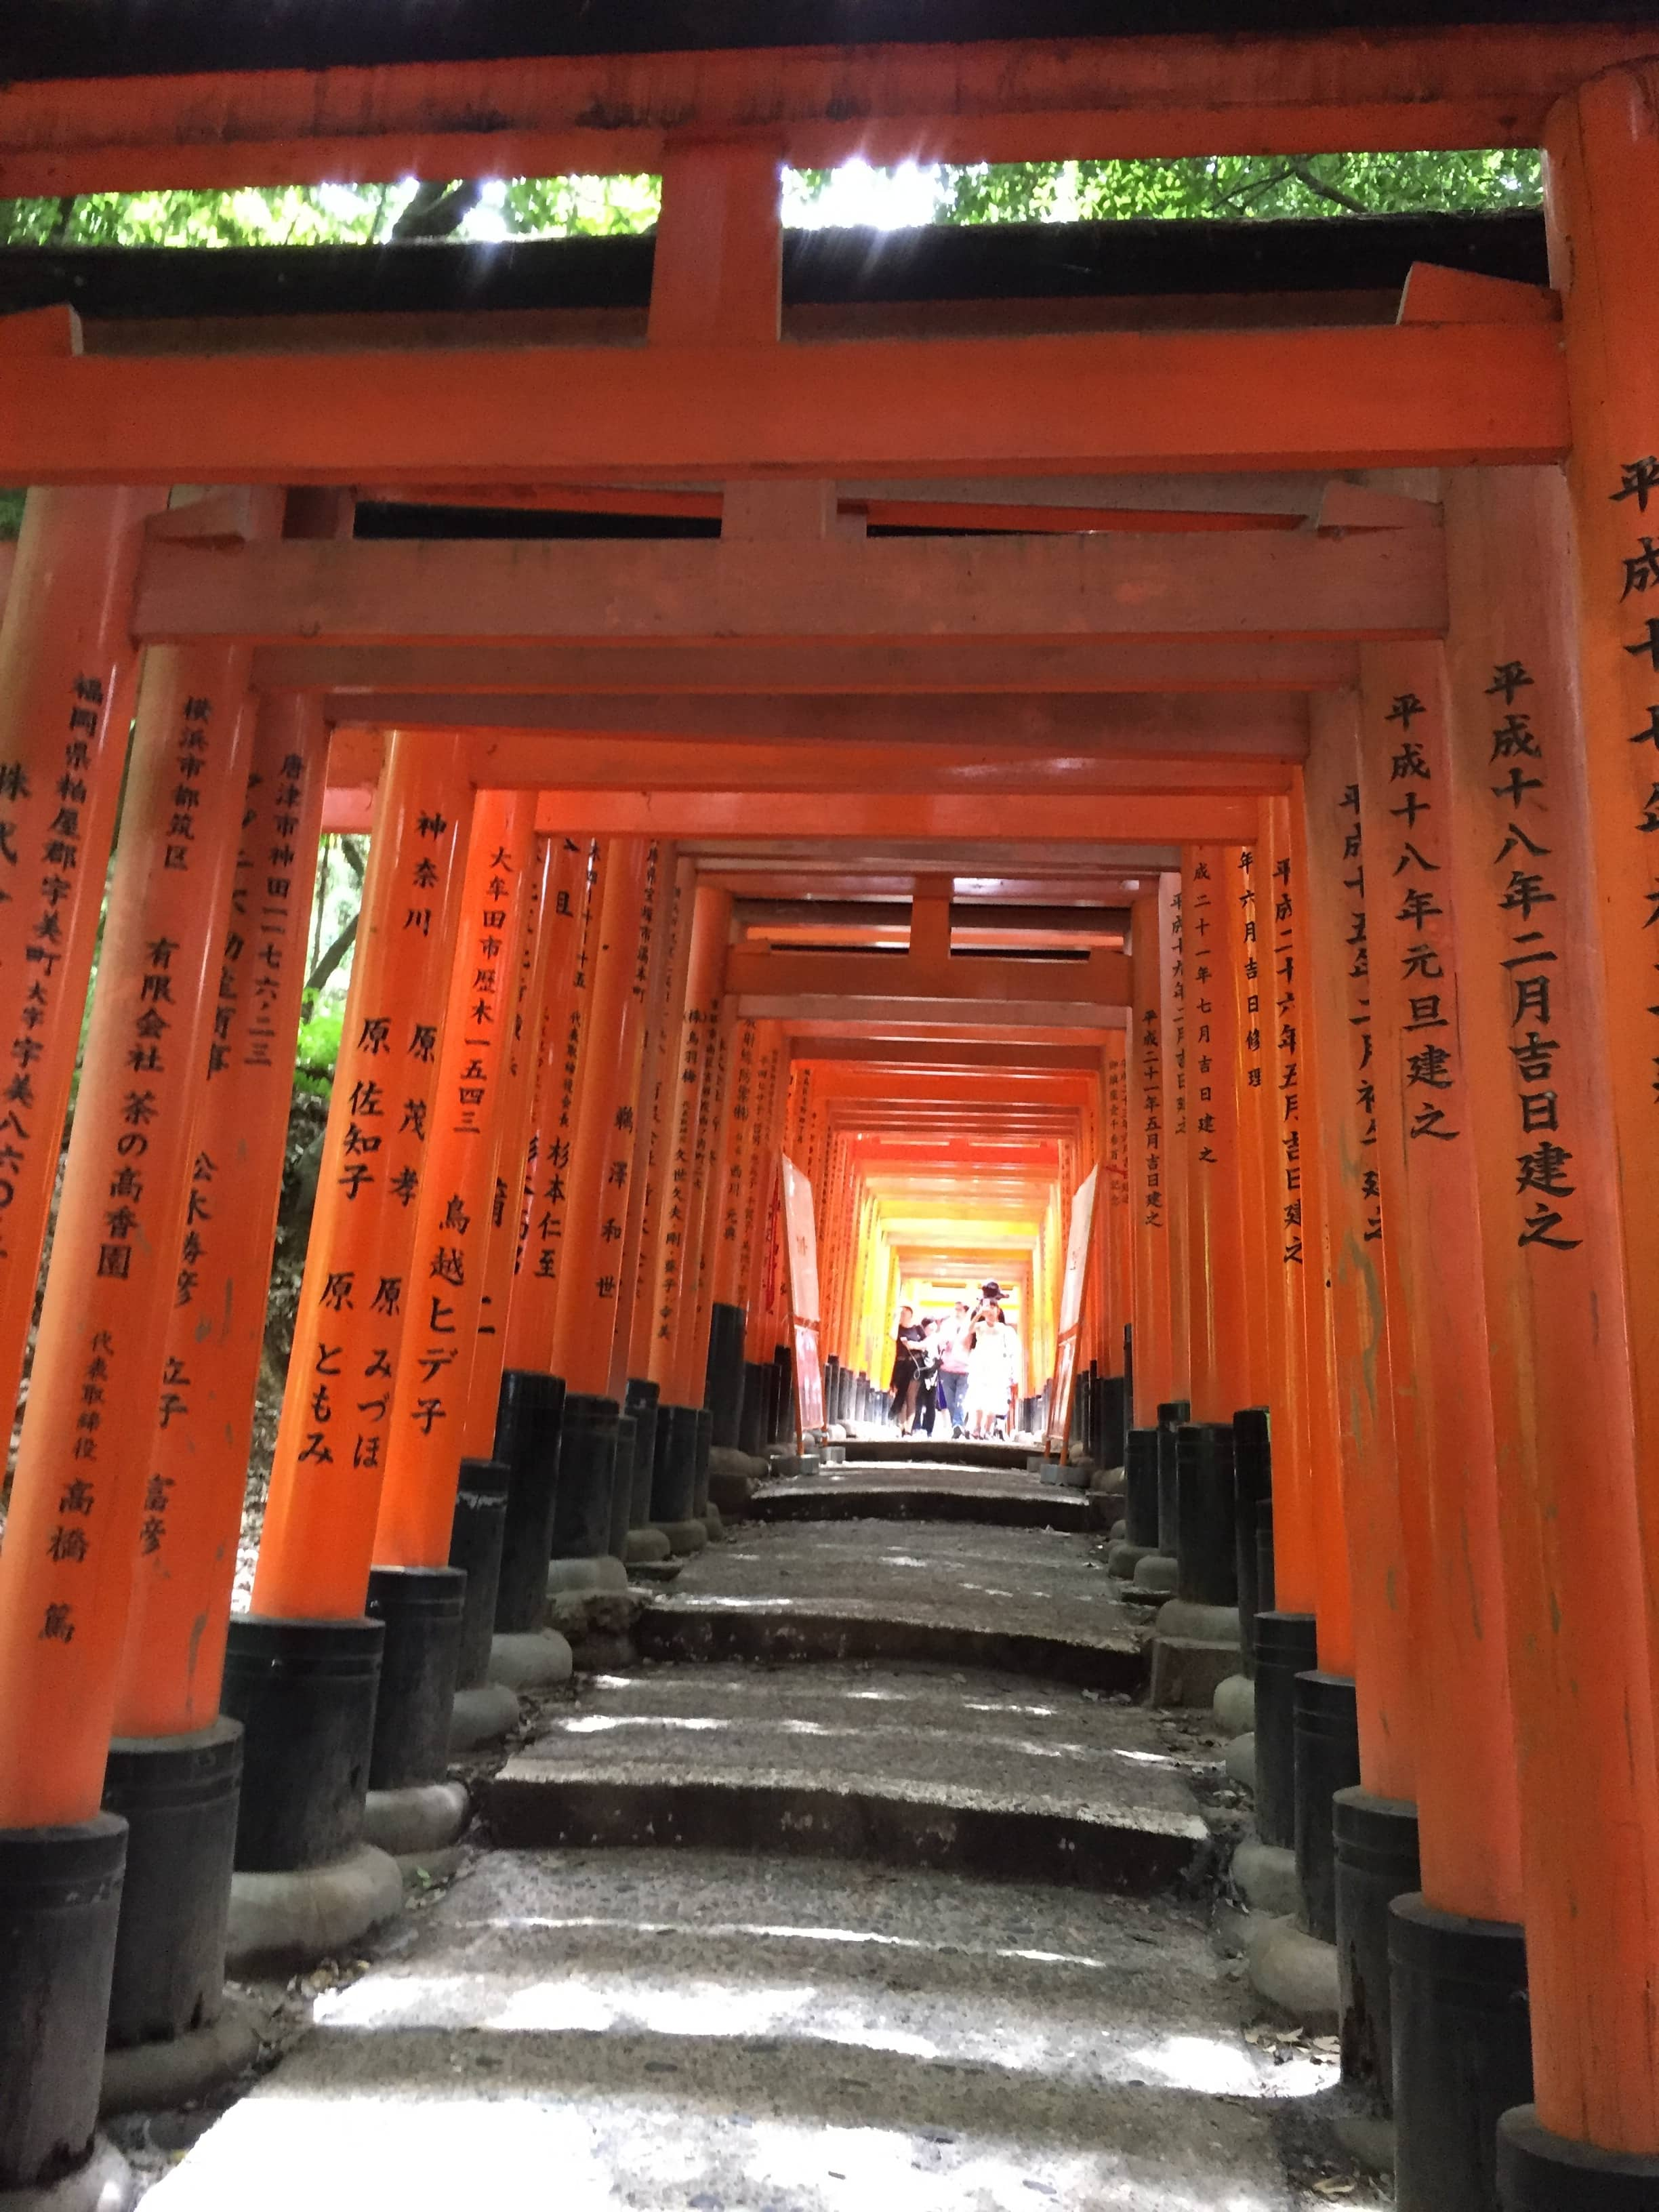 Each of the torii at Fushimi Inari Taisha has been donated by a Japanese business